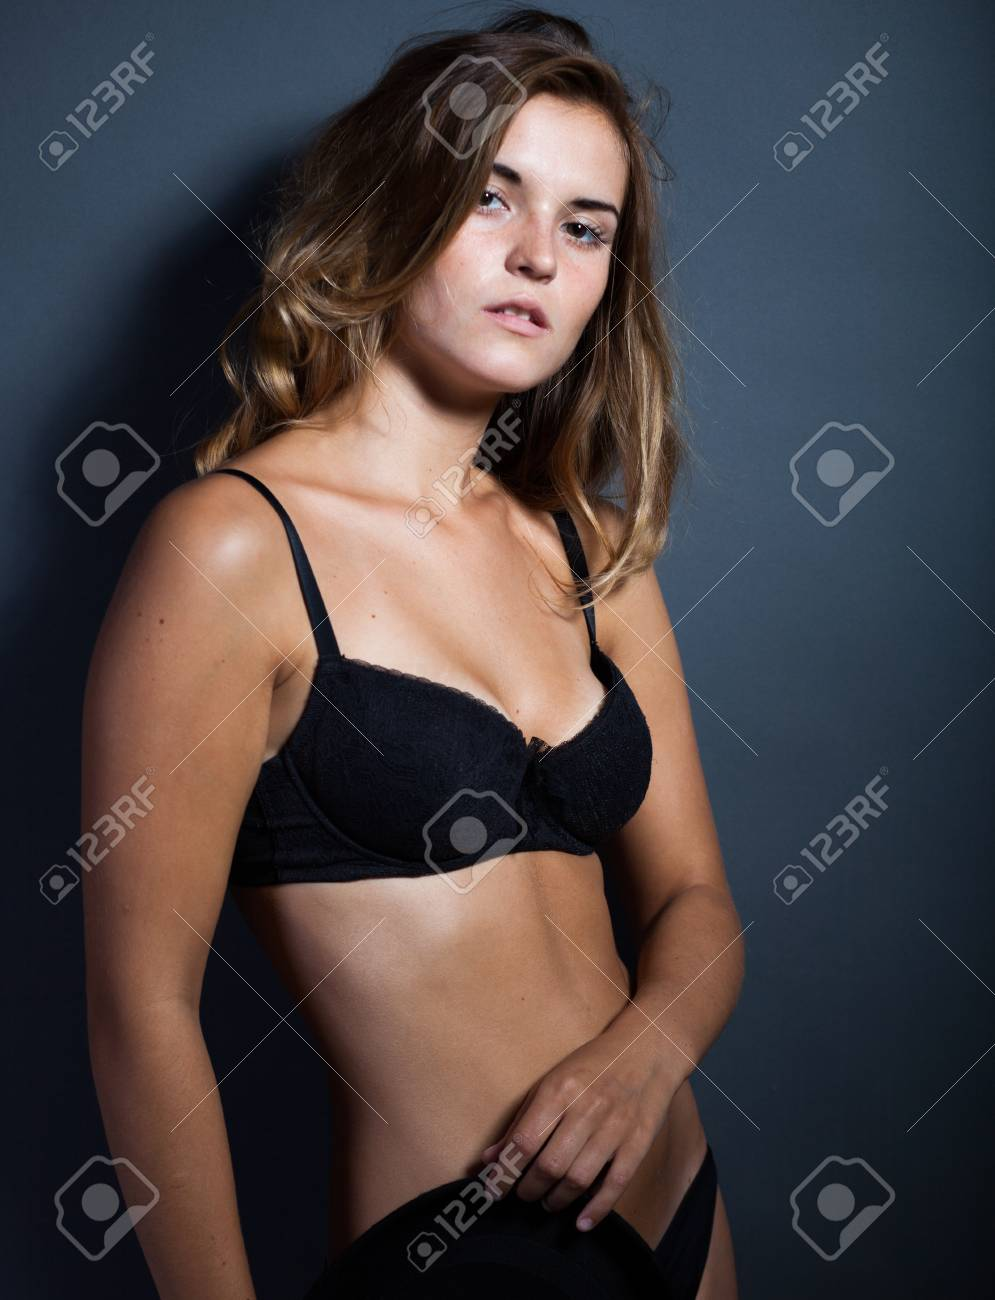 d14e61a0f90 Portrait of hot woman in lingerie on dark background Stock Photo - 22937794